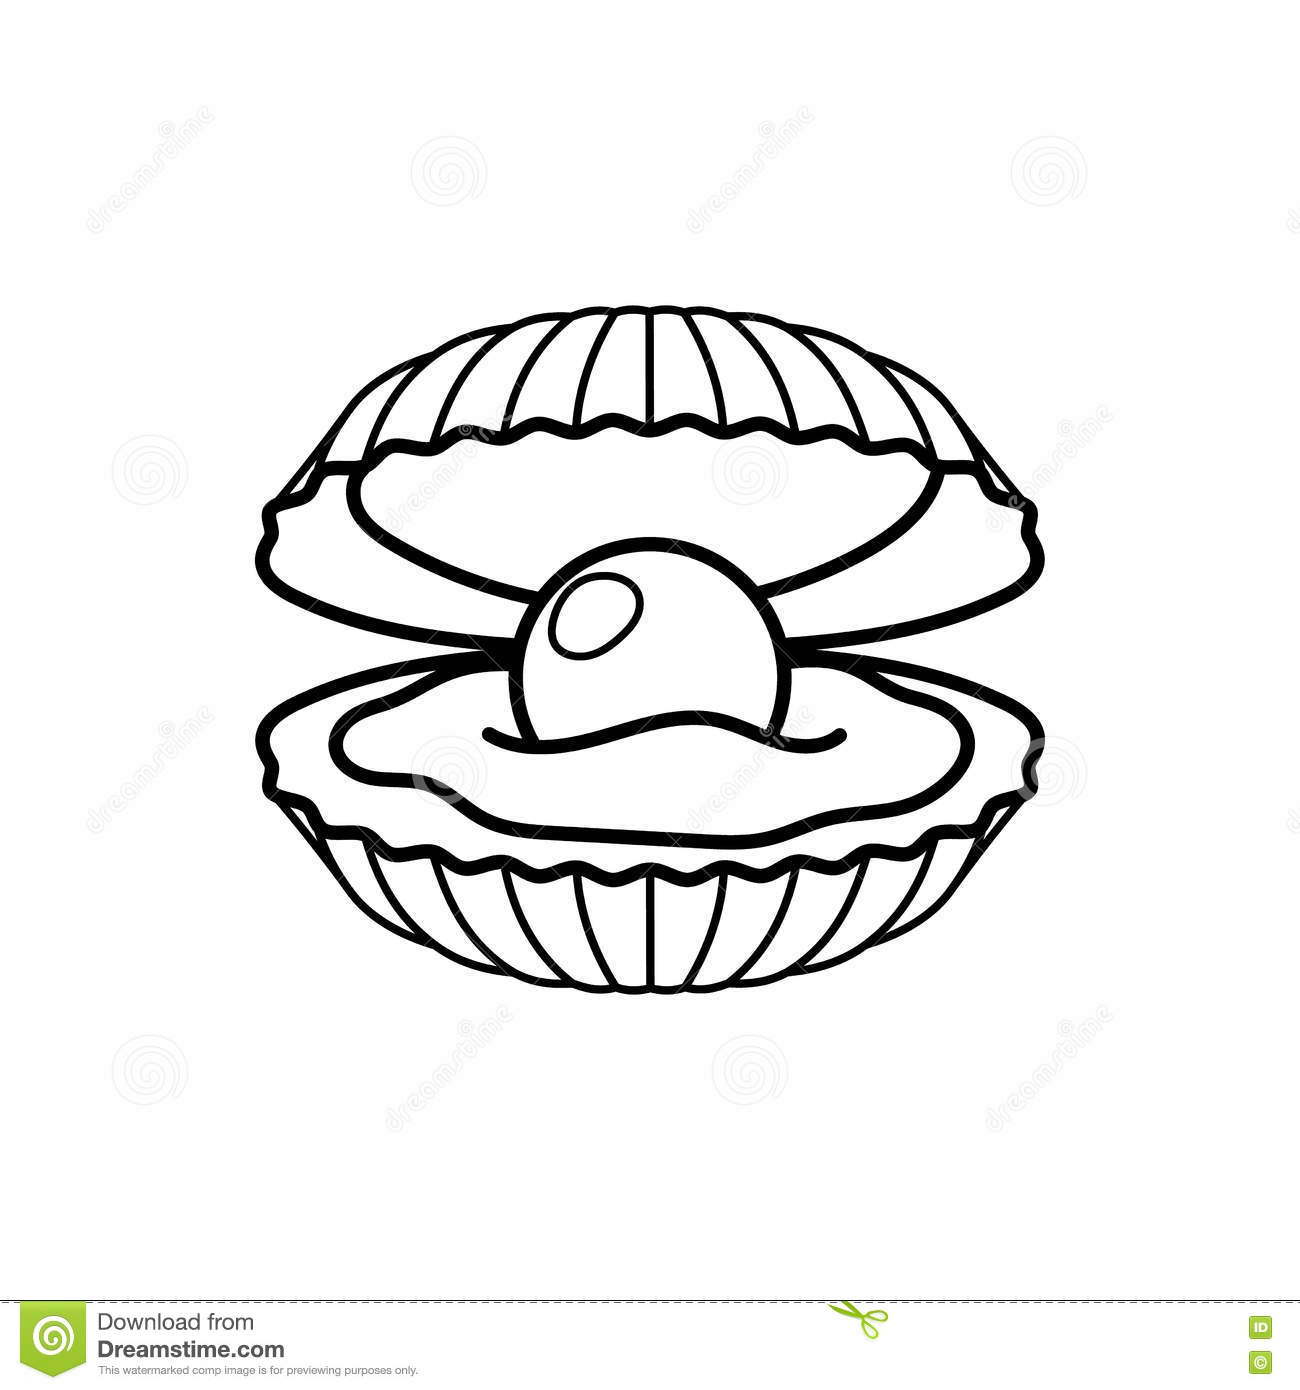 Black pearl in shell icon stock vector. Image of beautiful ...